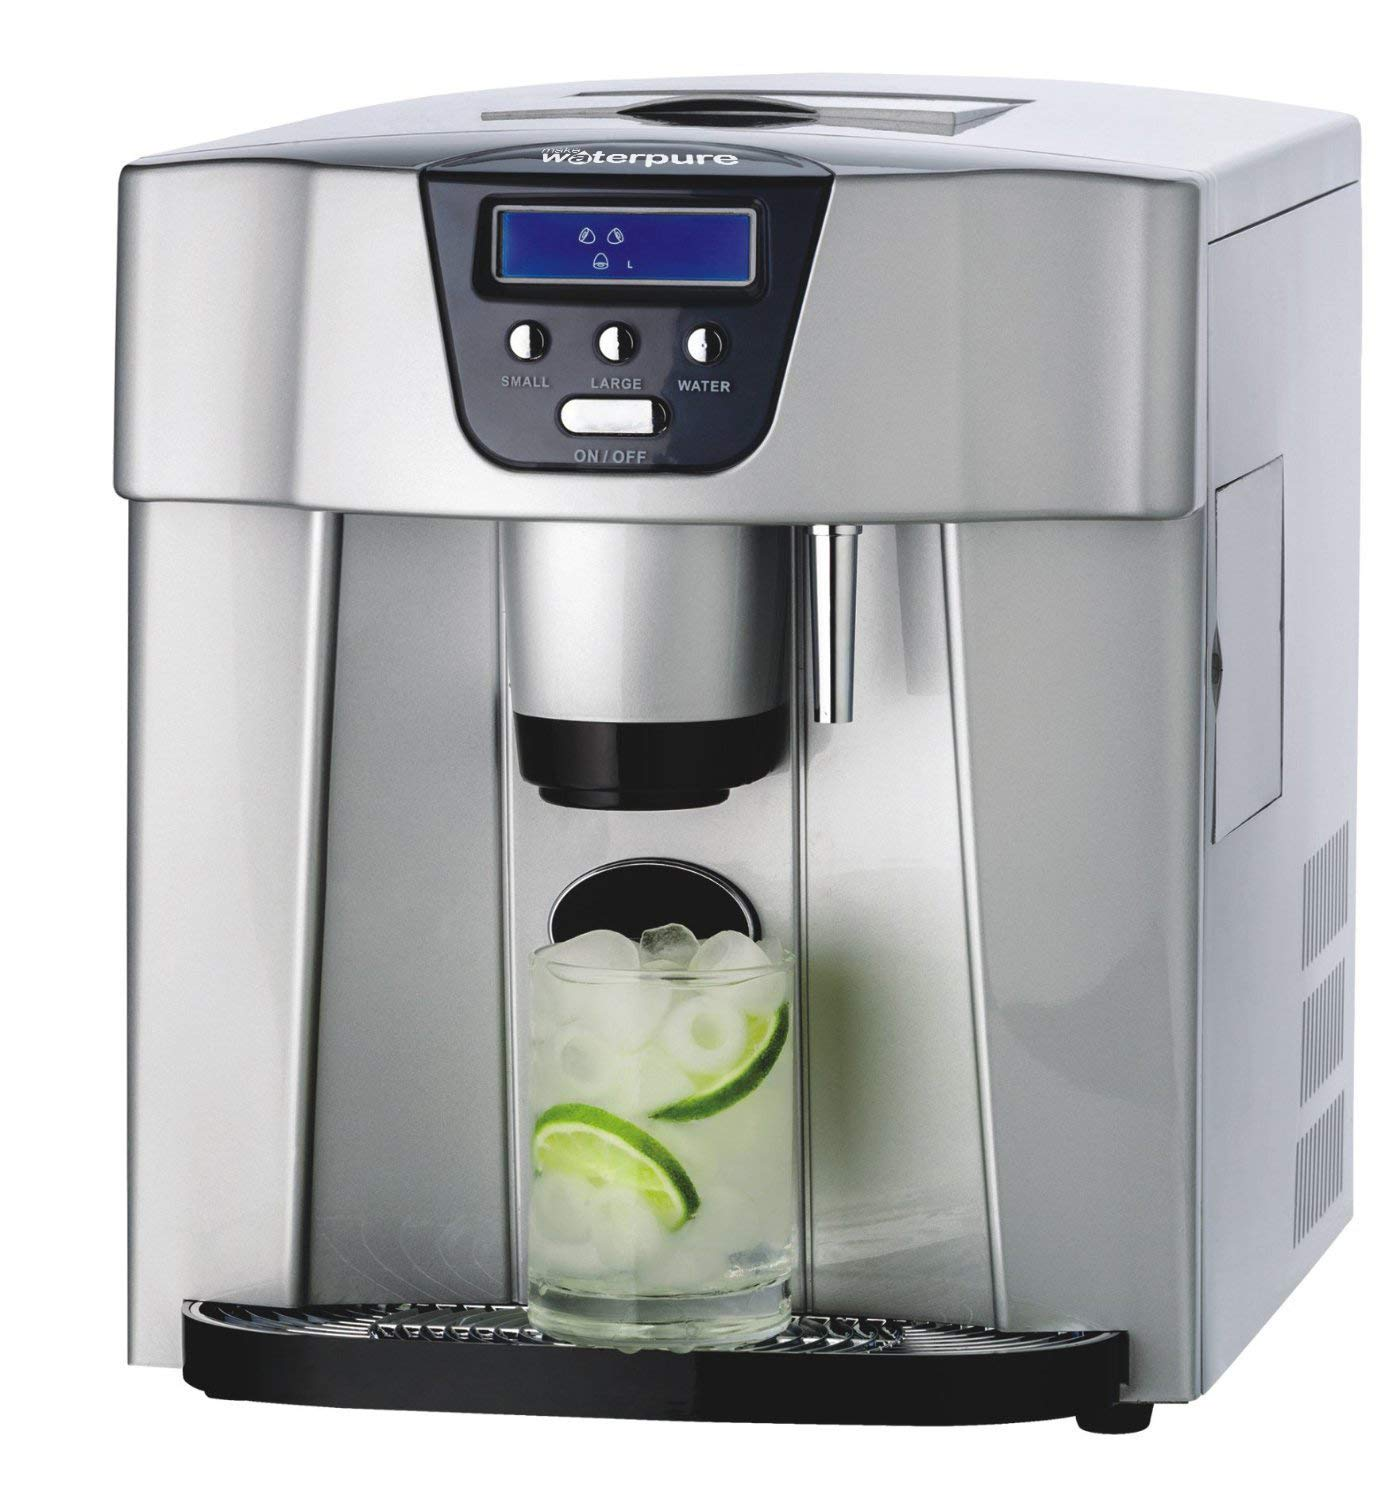 3in1 Ice Maker + Ice Cube Dispenser + Cold Water Dispenser with LED Display Make Water Pure